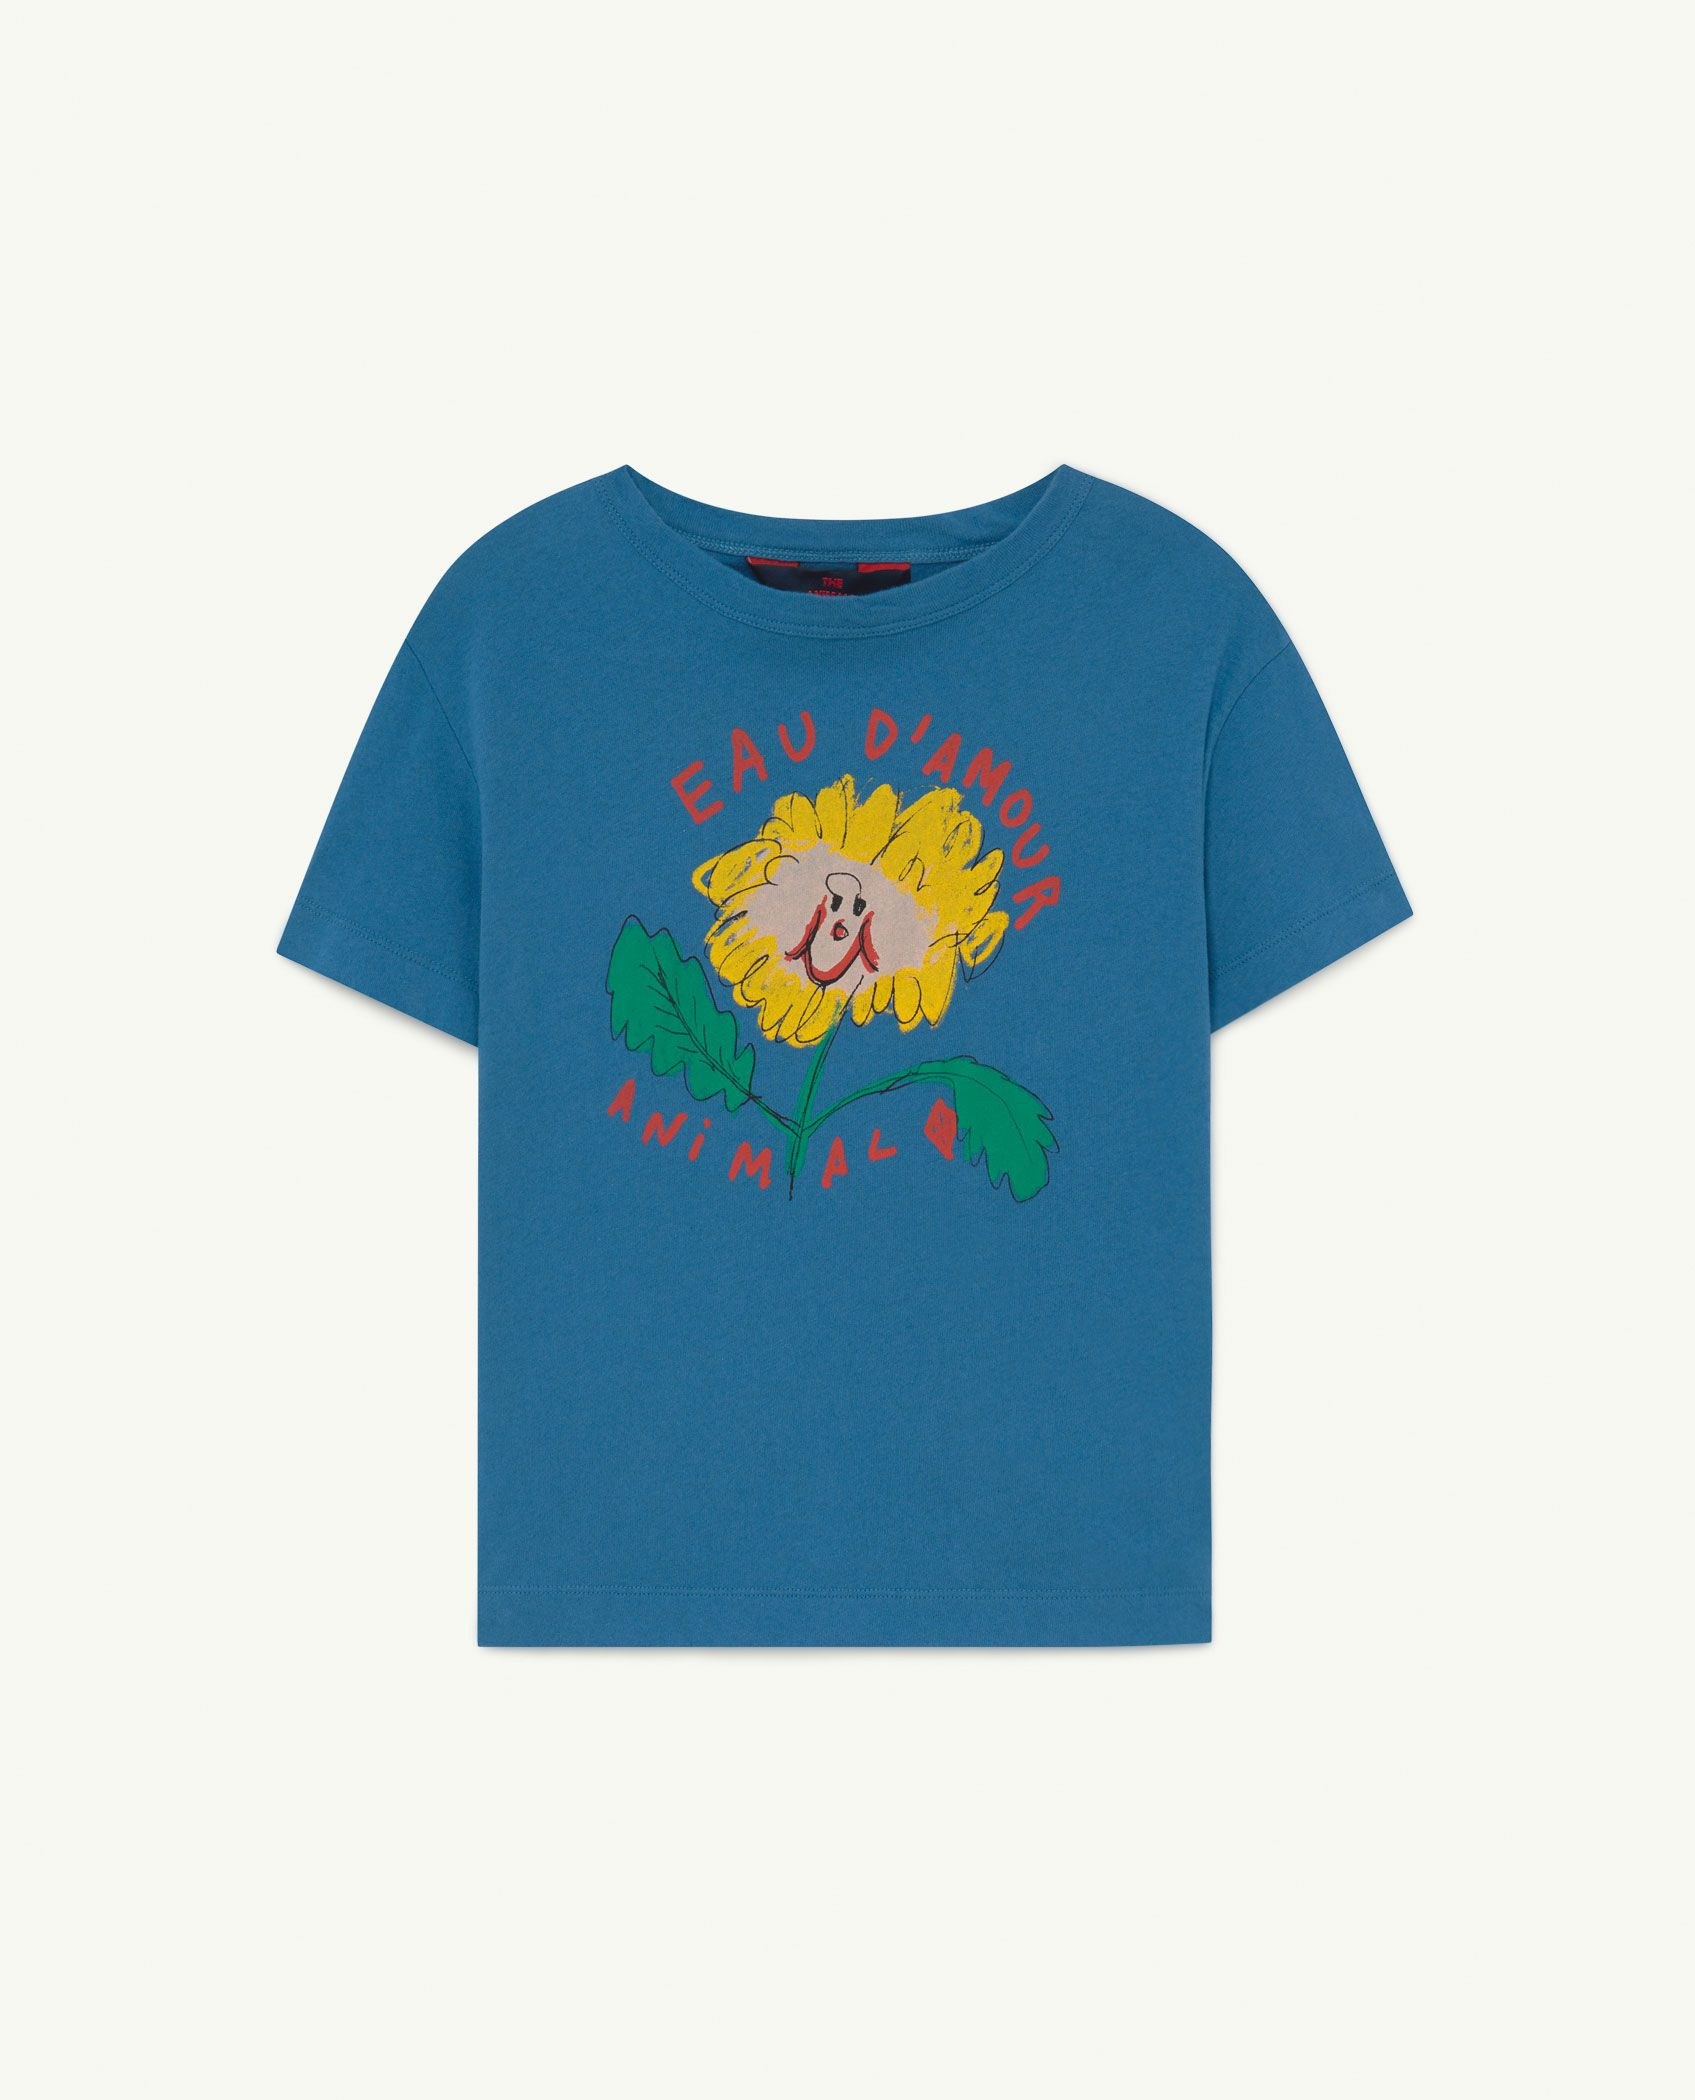 Recycled Soft Blue Eau d'Amour Rooster T-Shirt img-1